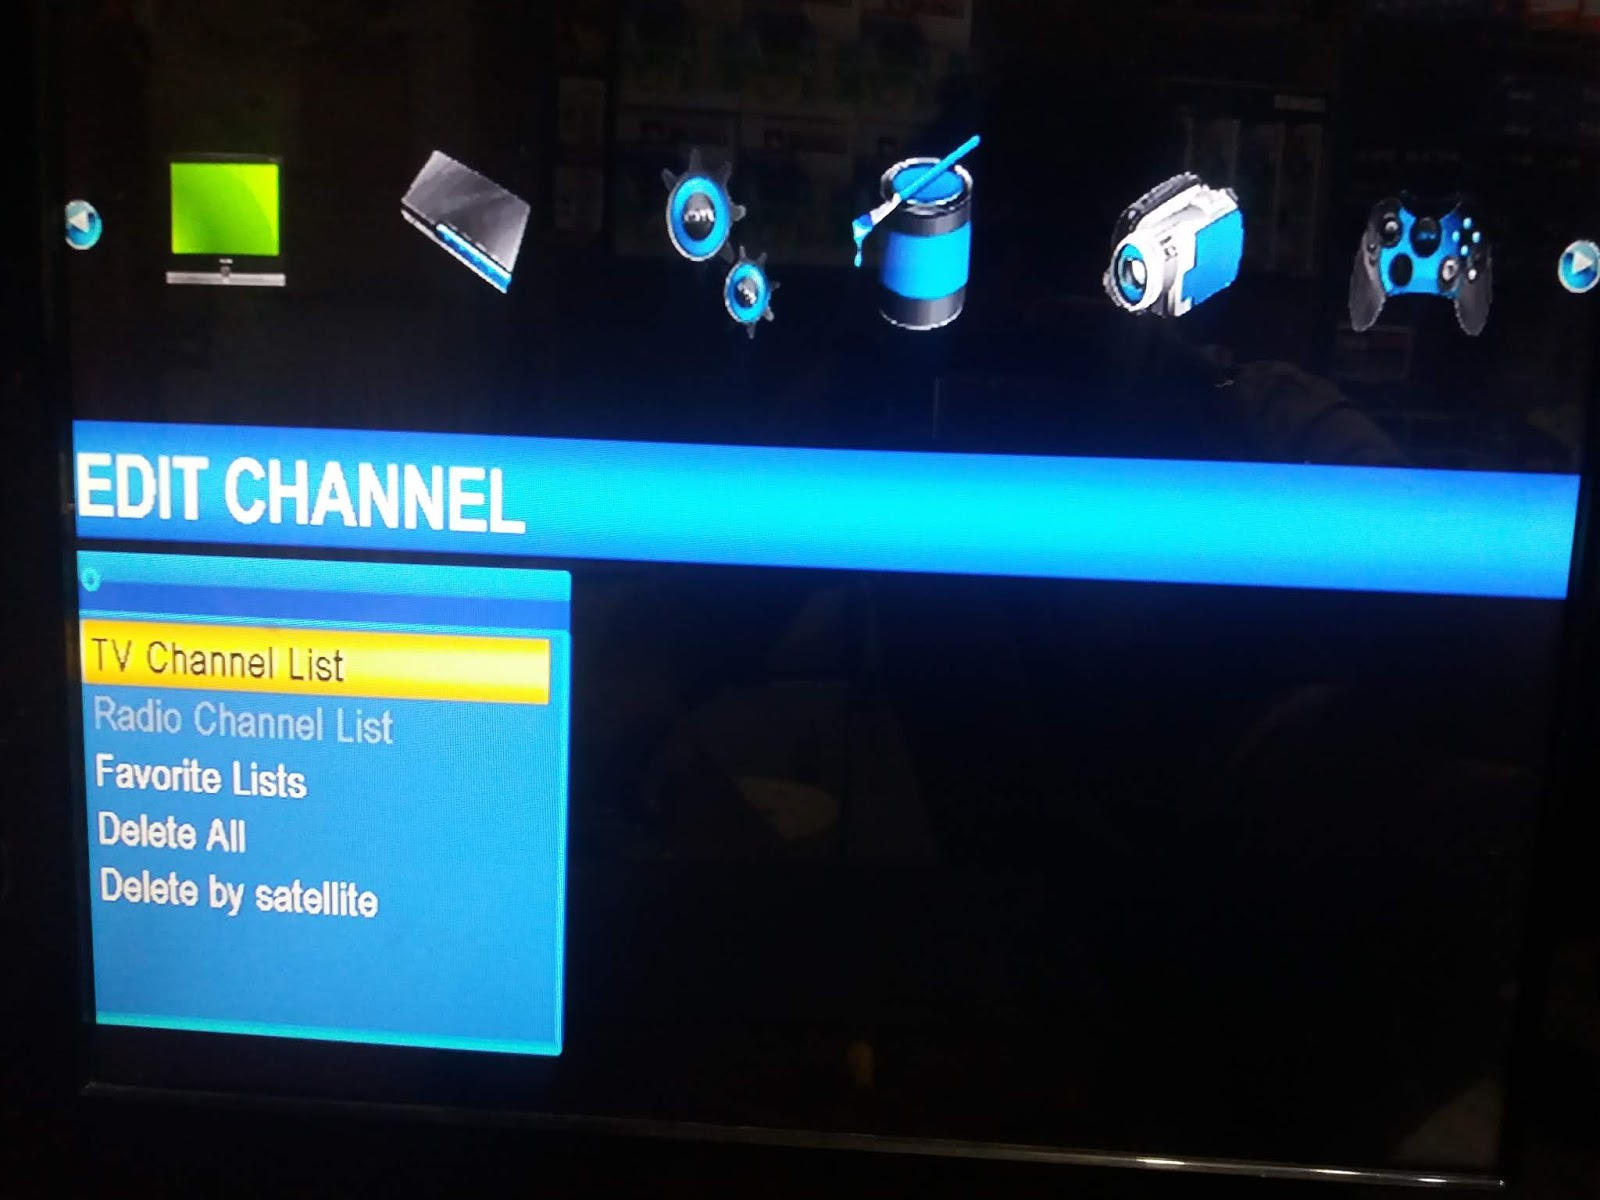 All Dish Receiver Software: February 2019